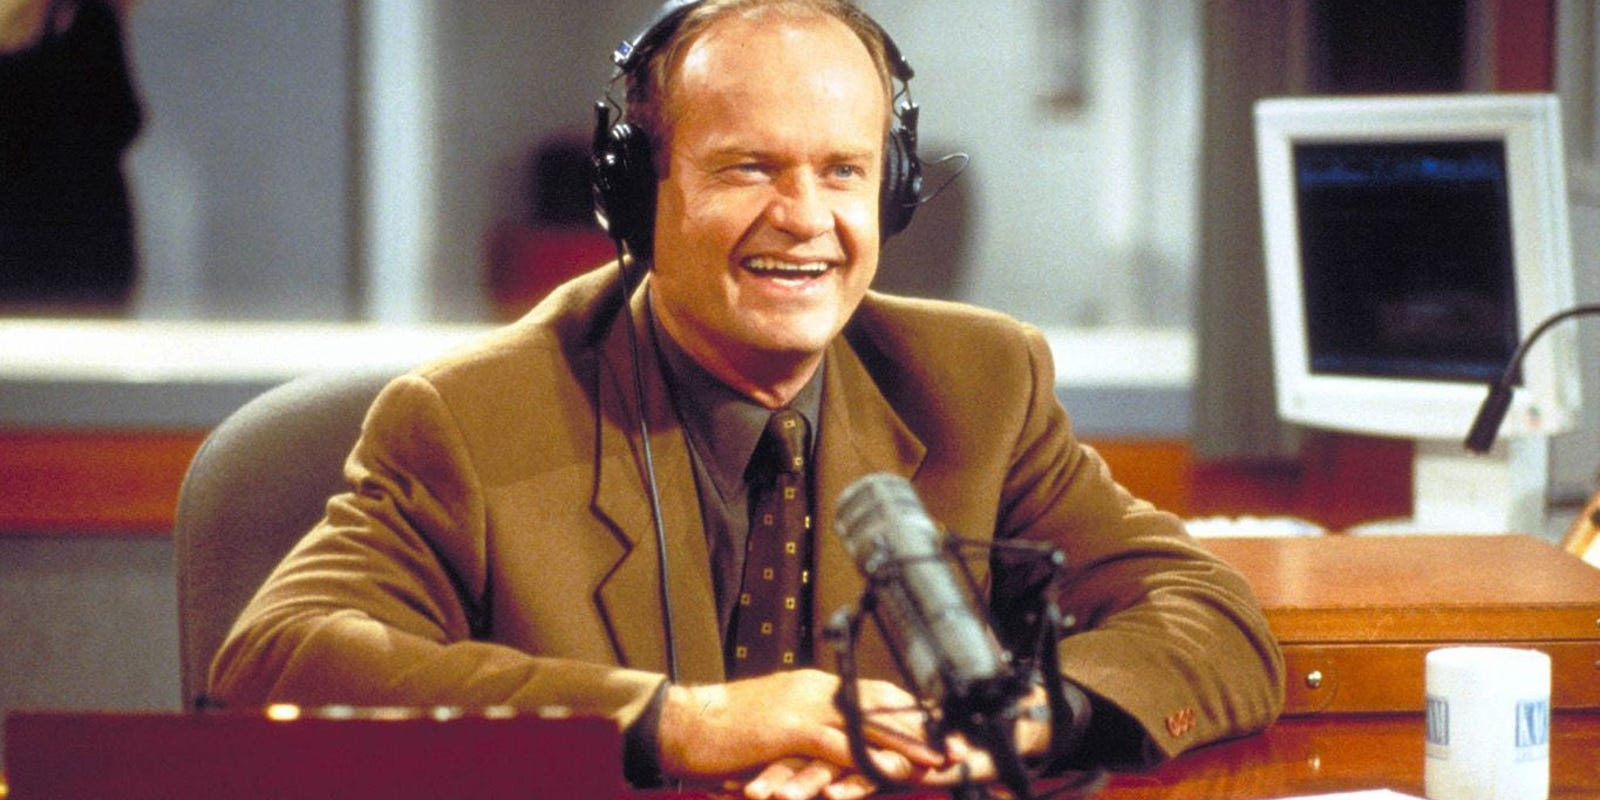 New Streaming Service Is Courting Fans With 'Frasier' Revival, 'Mission: Impossible 7'